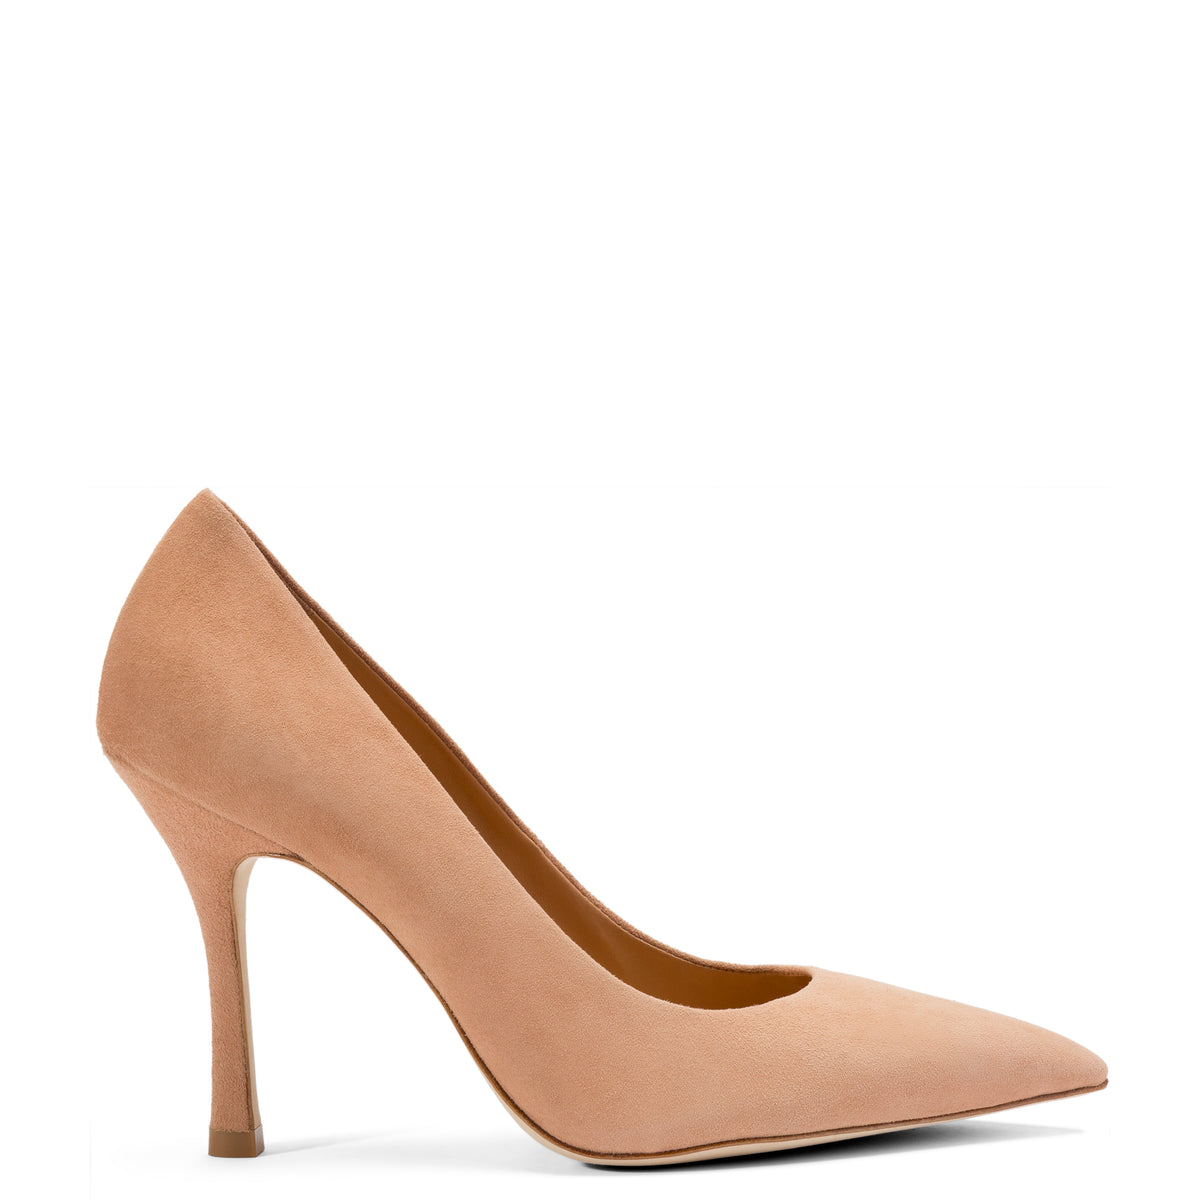 Candy Pump In Tan Suede